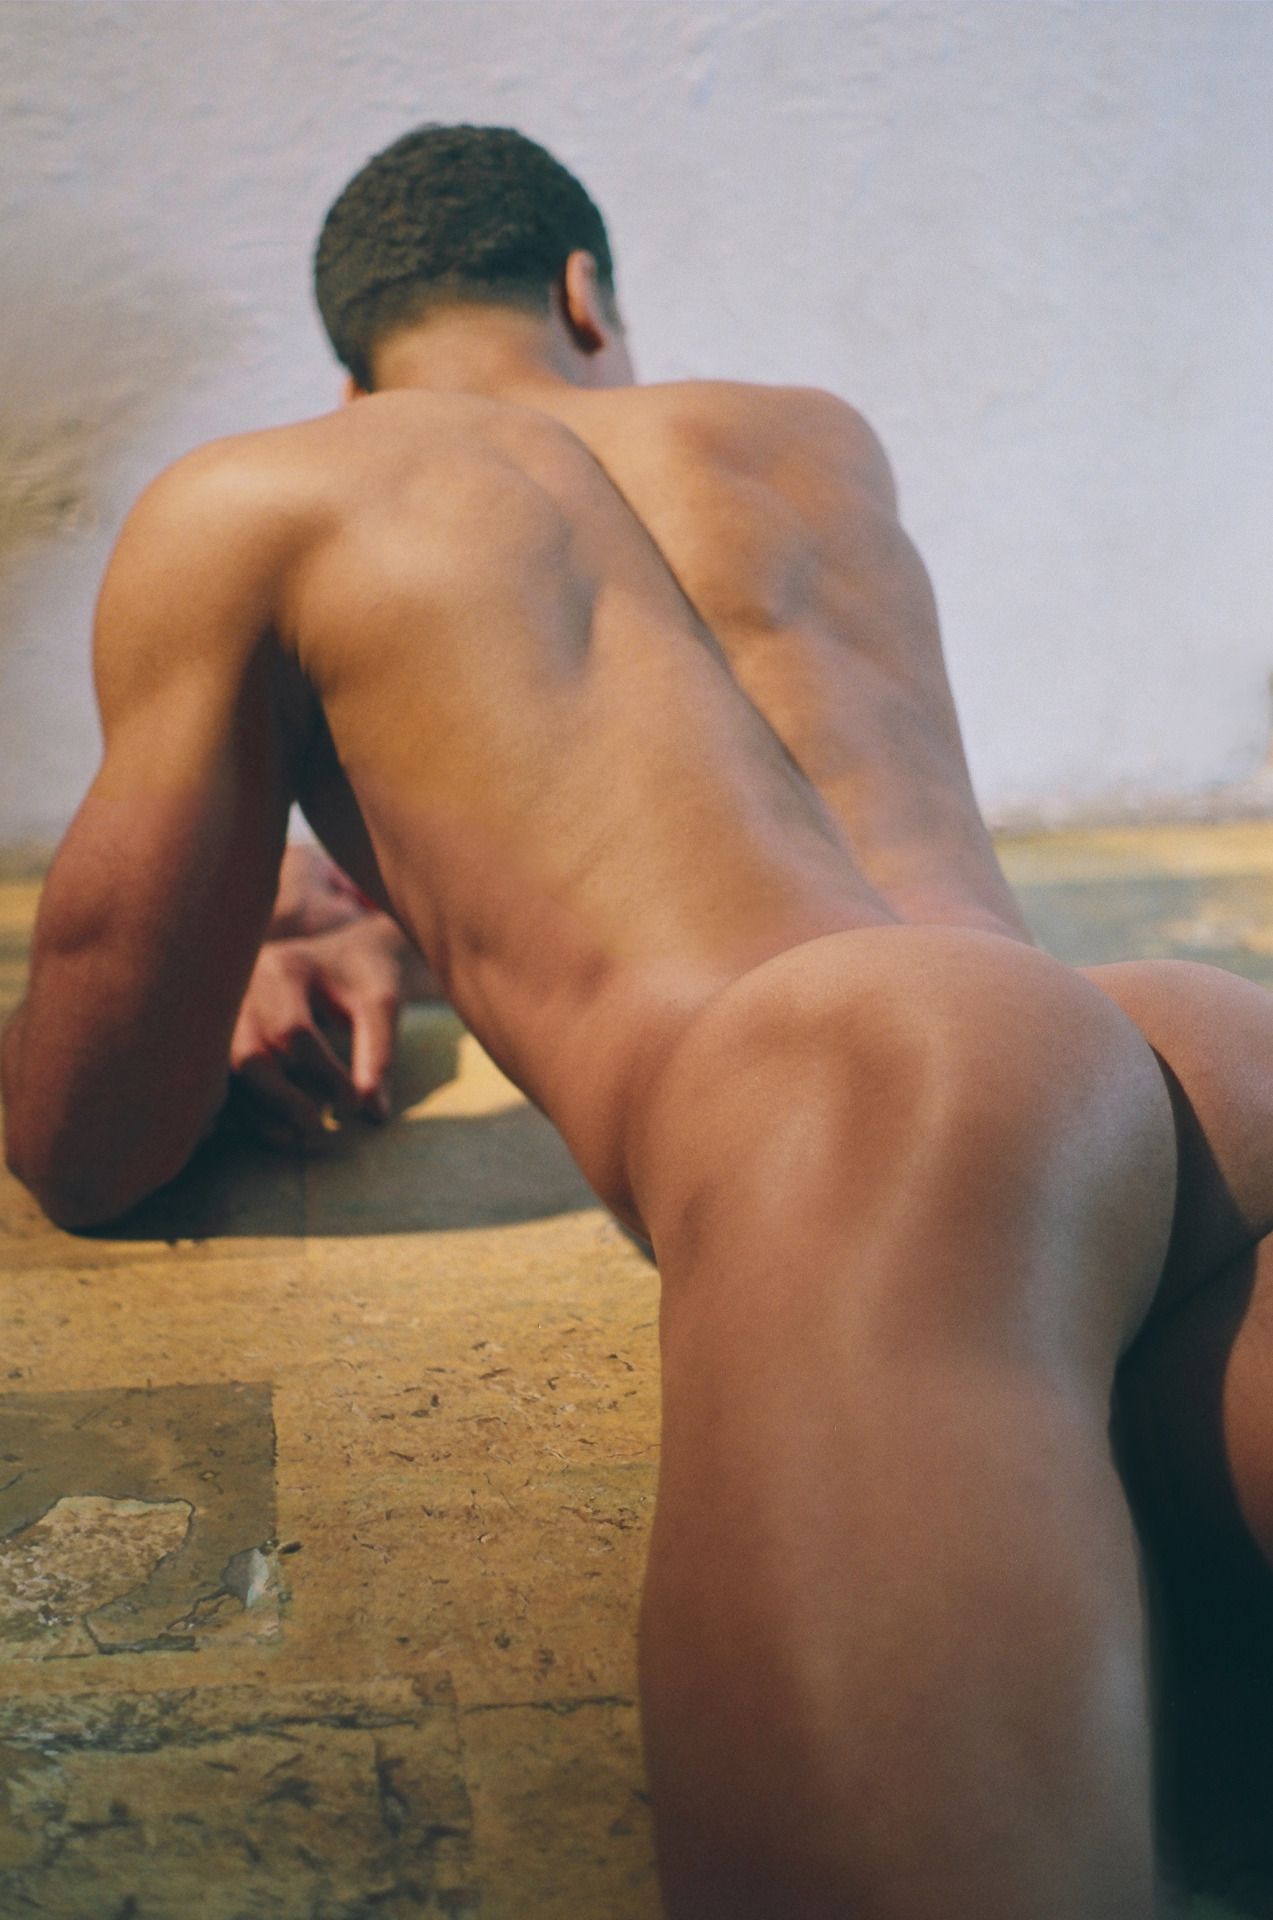 blkass:  Want more of this? FOLLOW blkass.tumblr.com Or click HERE to watch complete videos !